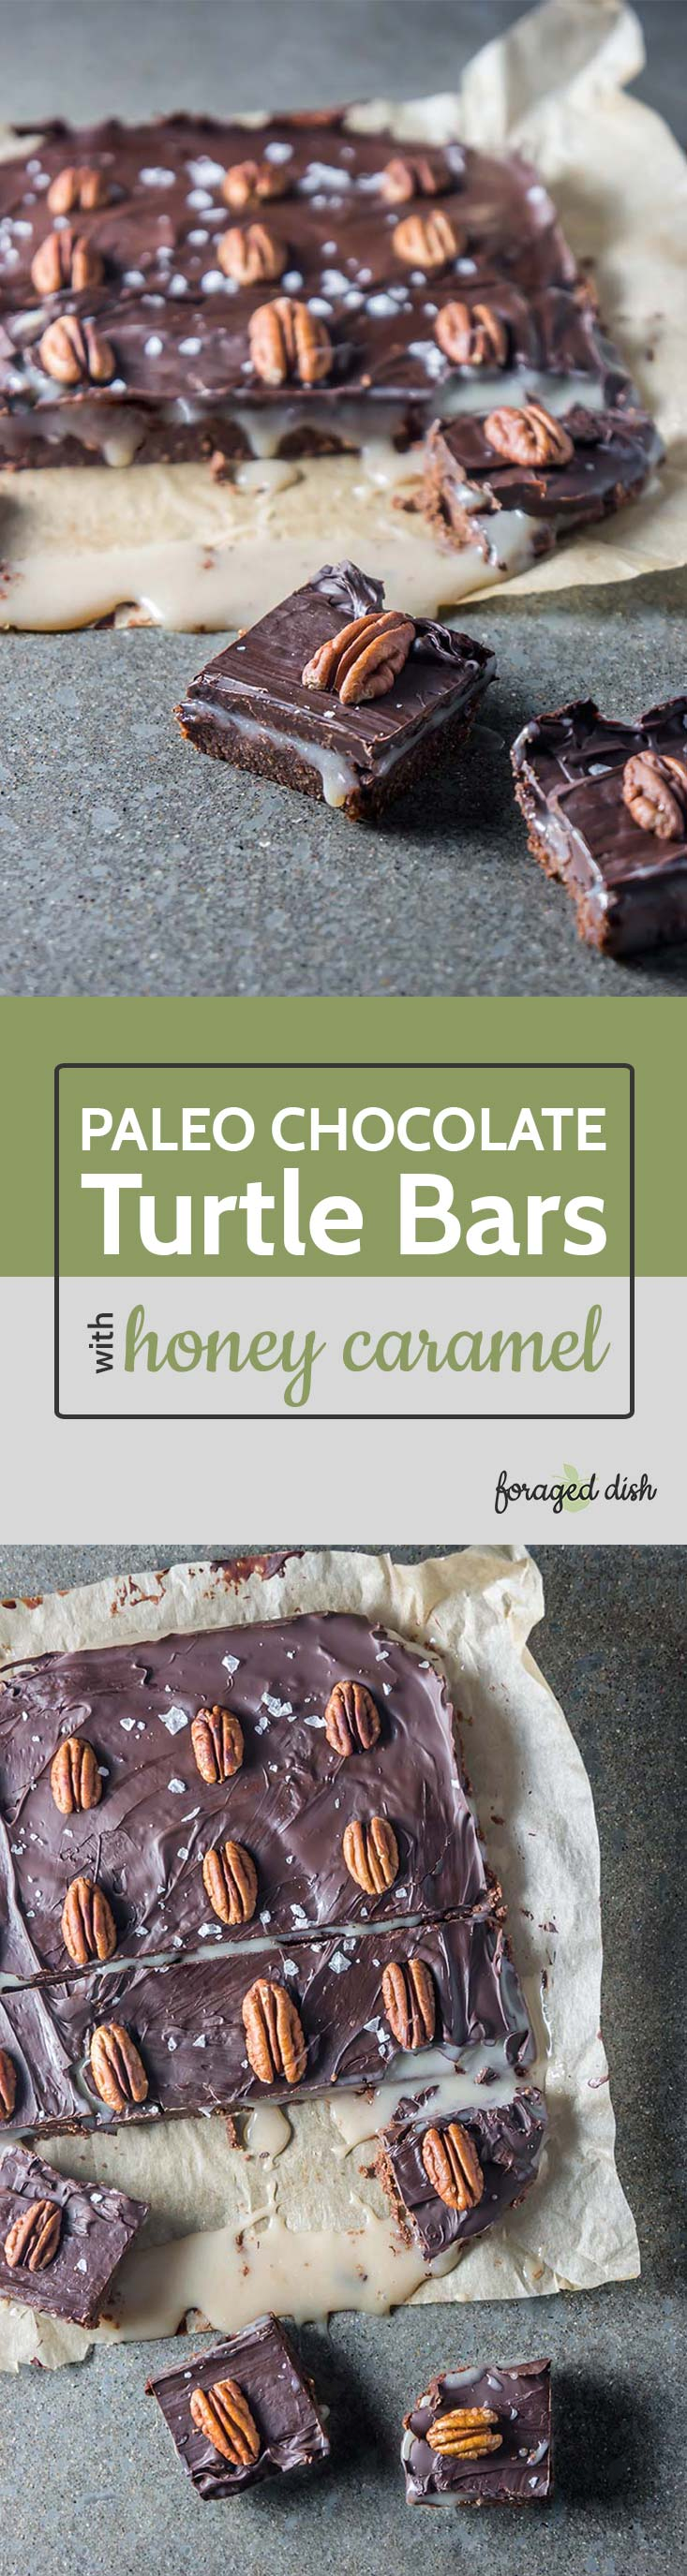 Paleo Chocolate Turtle Bars with Honey Caramel